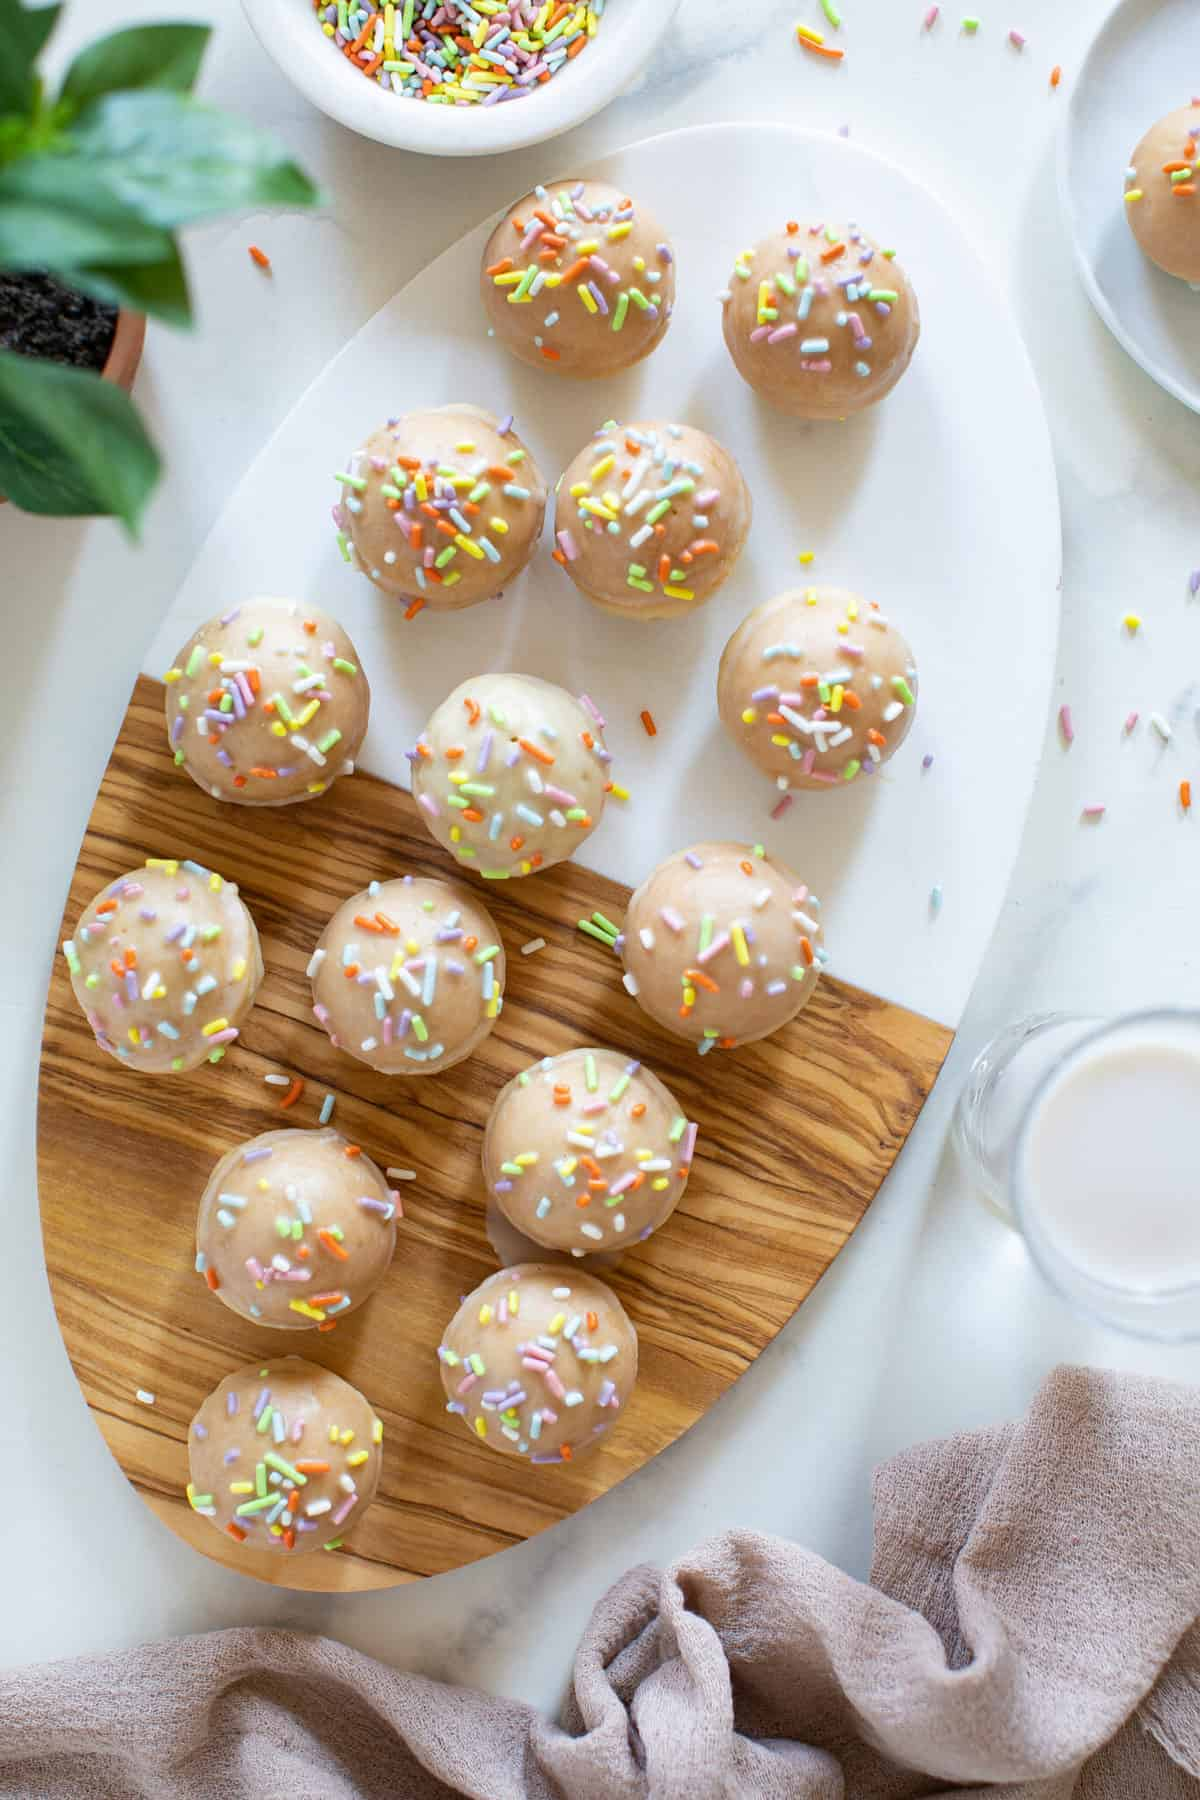 overhead of cutting board with vegan sprinkle donut holes with rainbow sprinkles